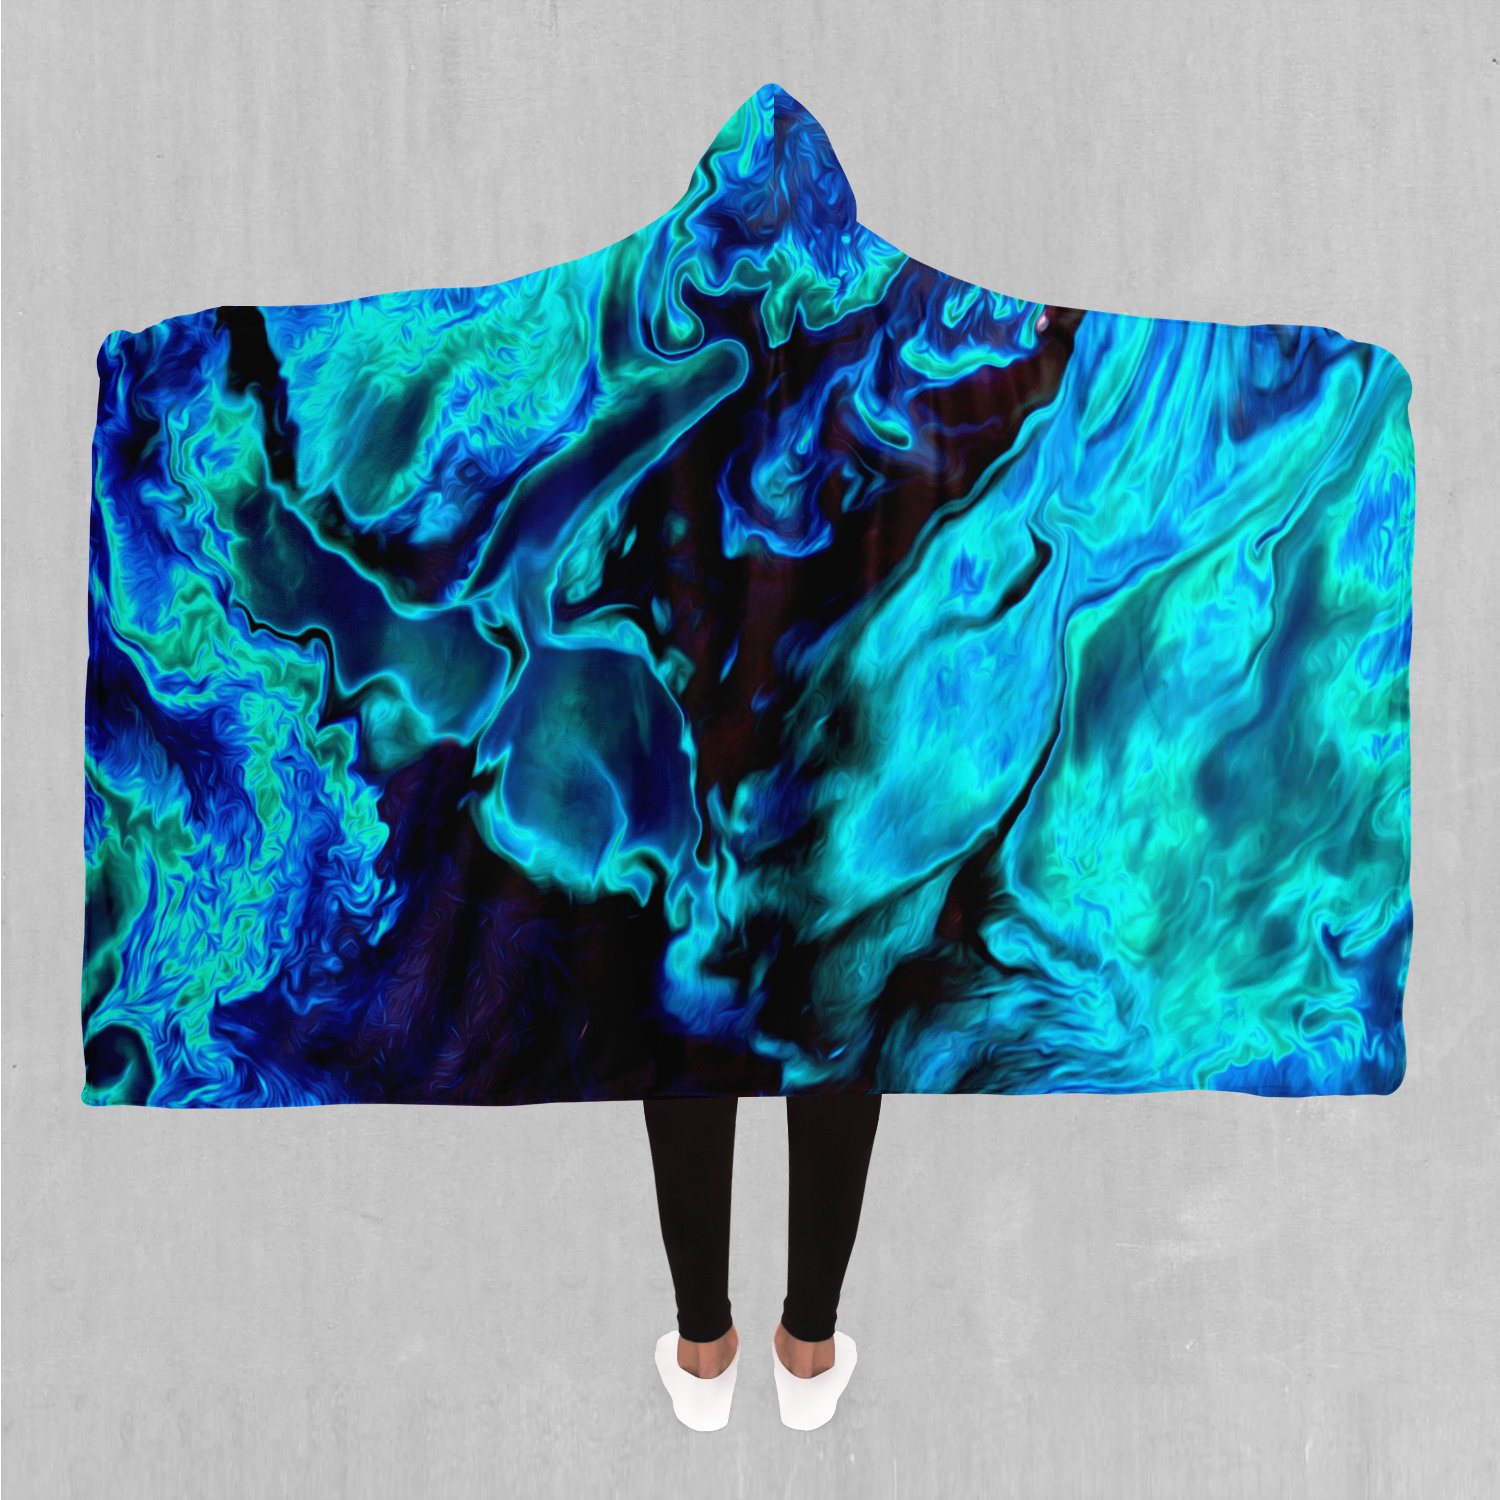 Enigma Sea Hooded Blanket - EDM Rave Festival Street Wear Abstract Apparel